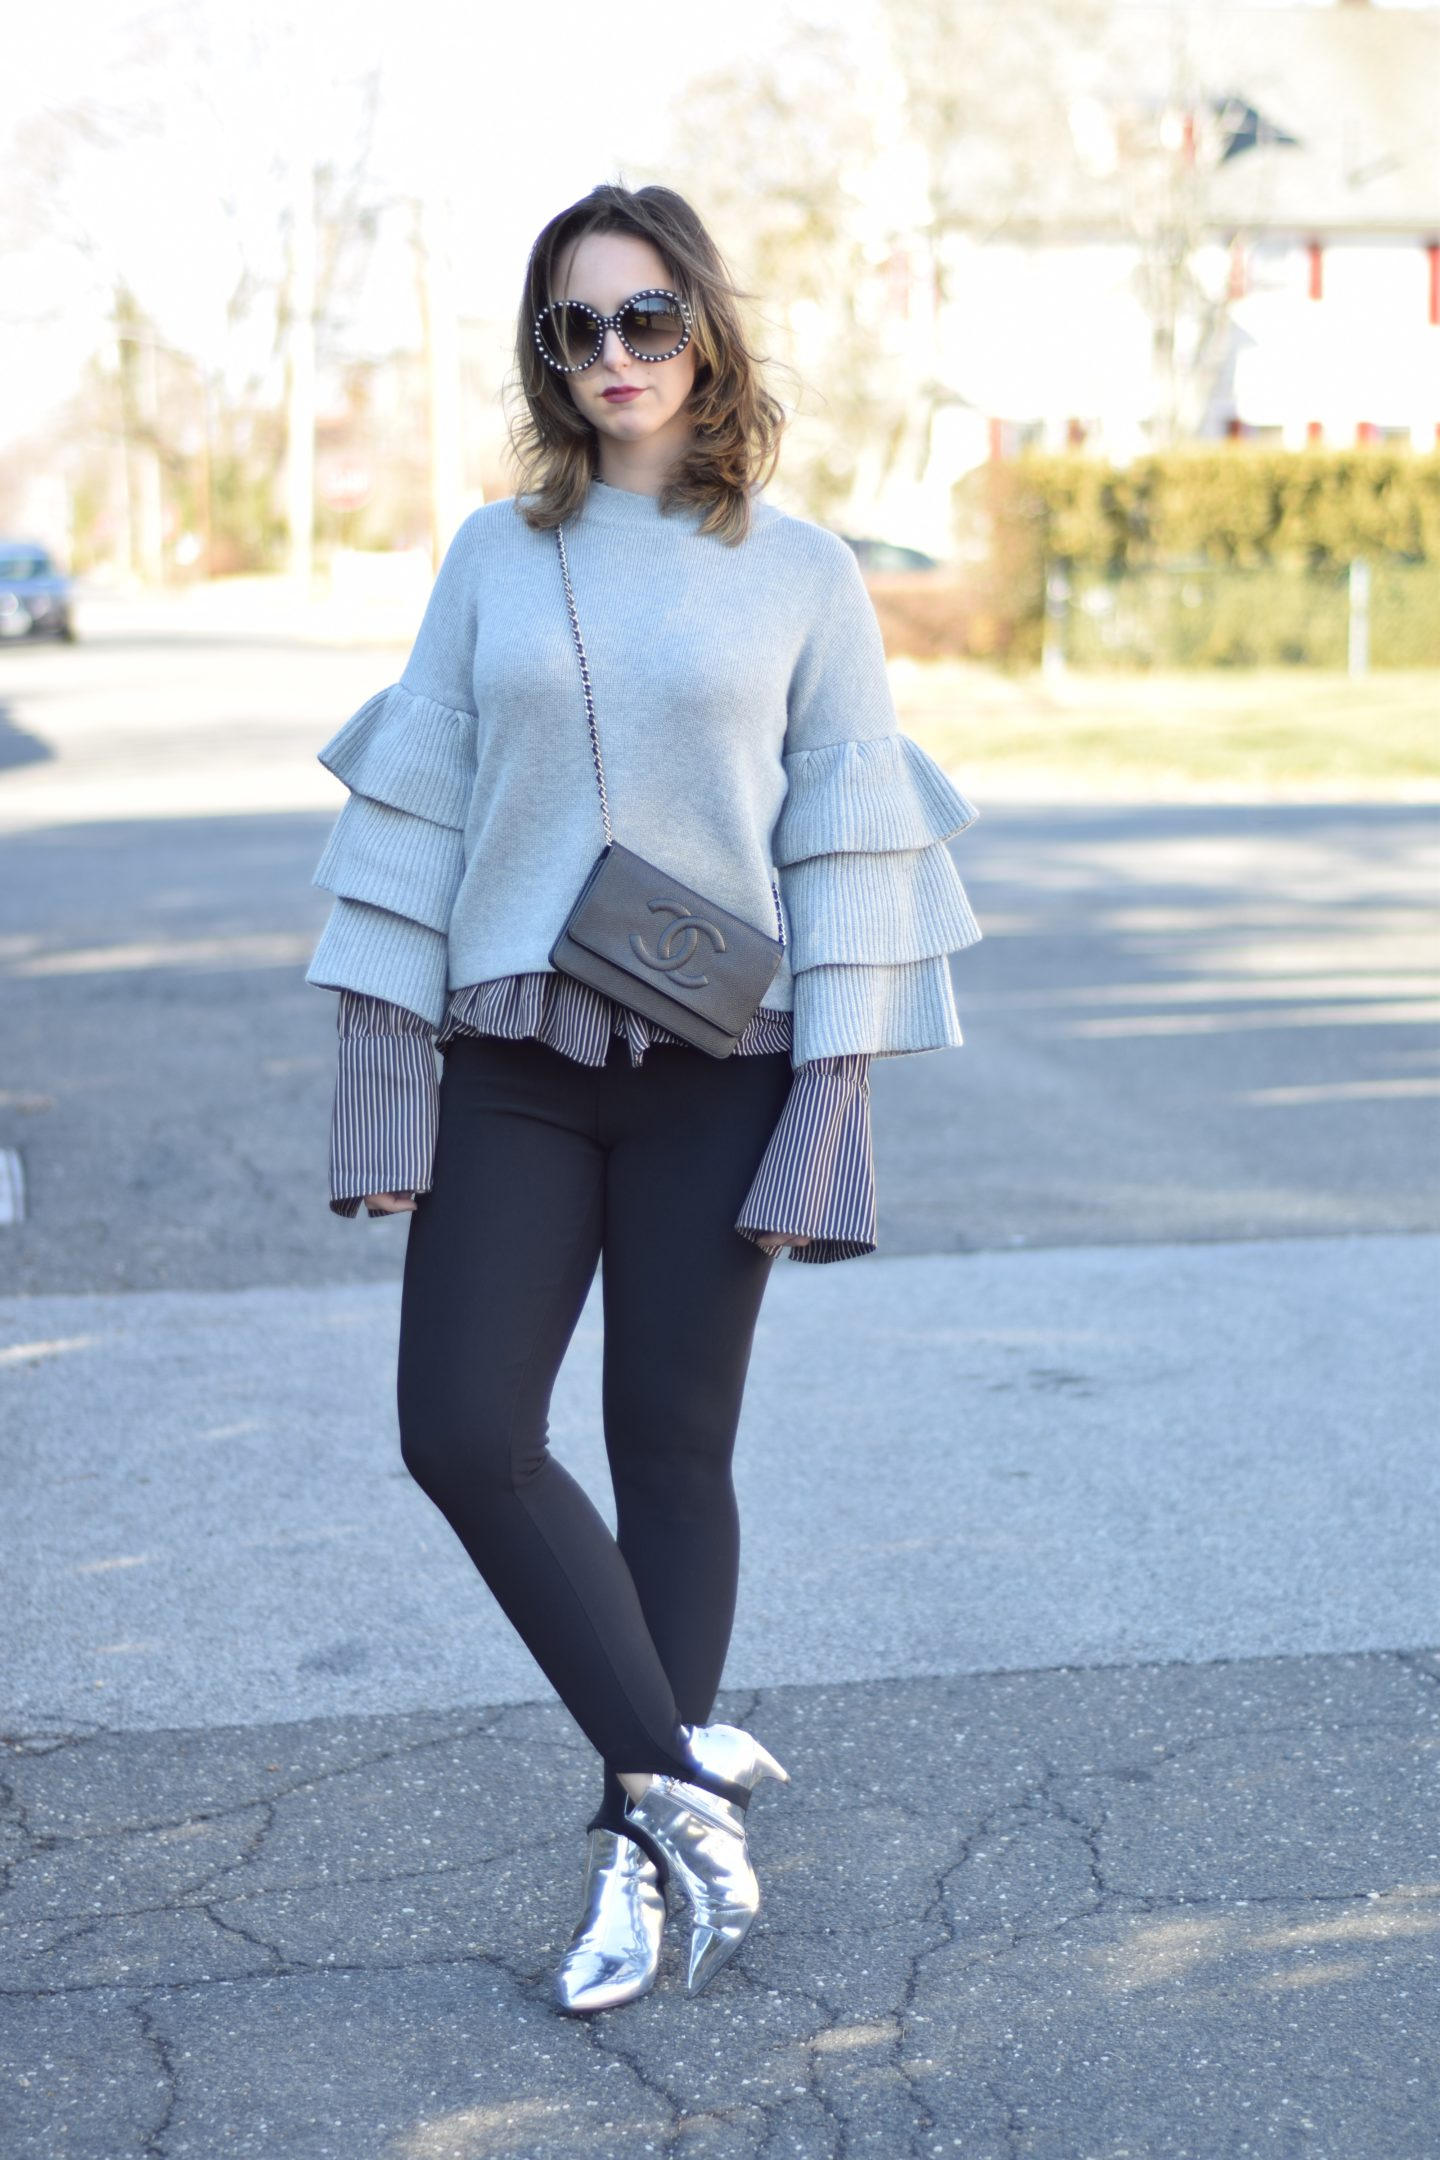 silver-booties-zara-style-outfit